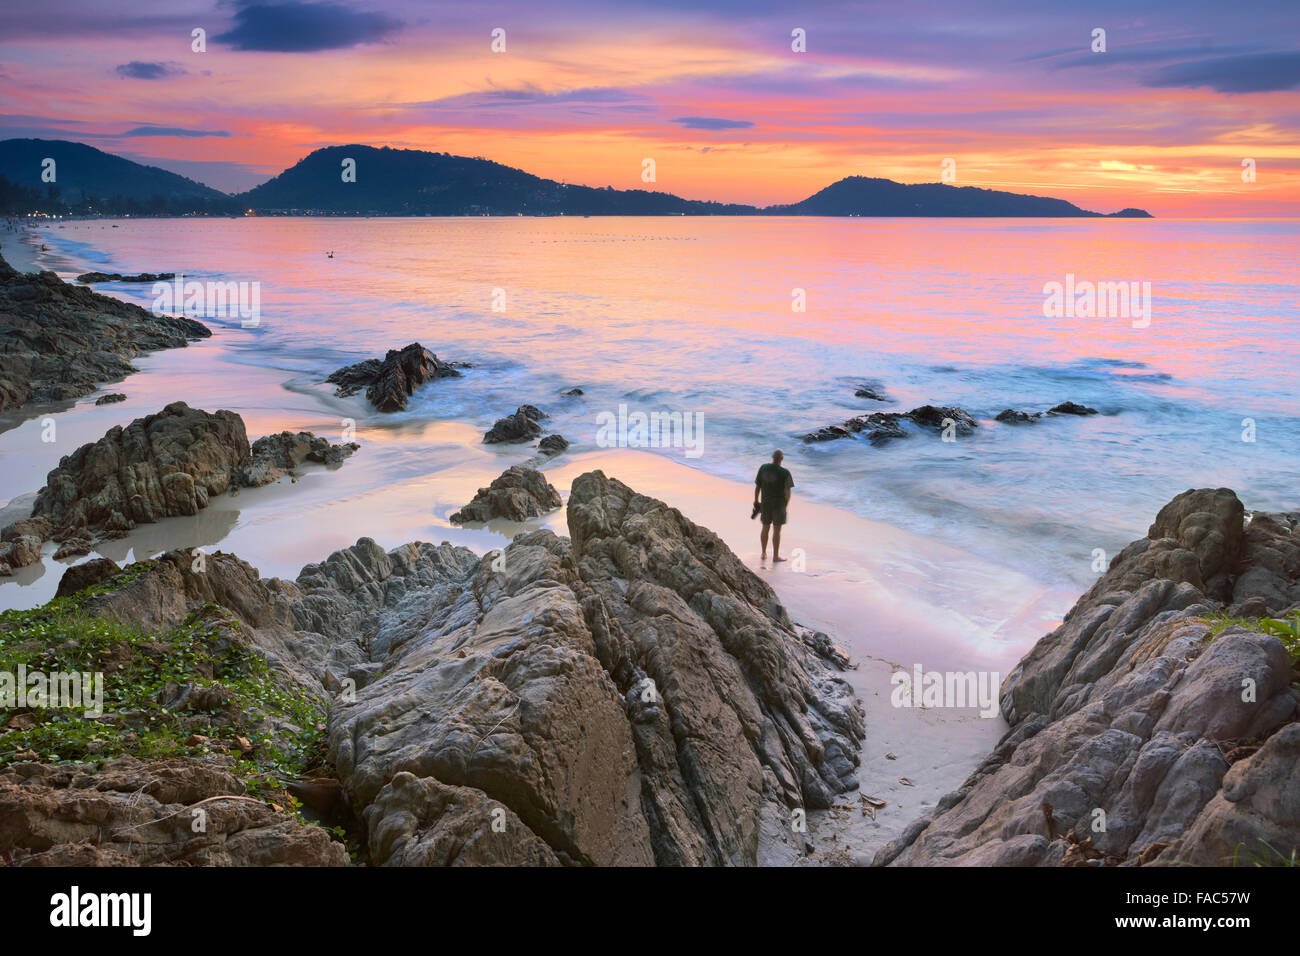 Thailand - Phuket Island, Patong Beach, sunset time scenery - Stock Image